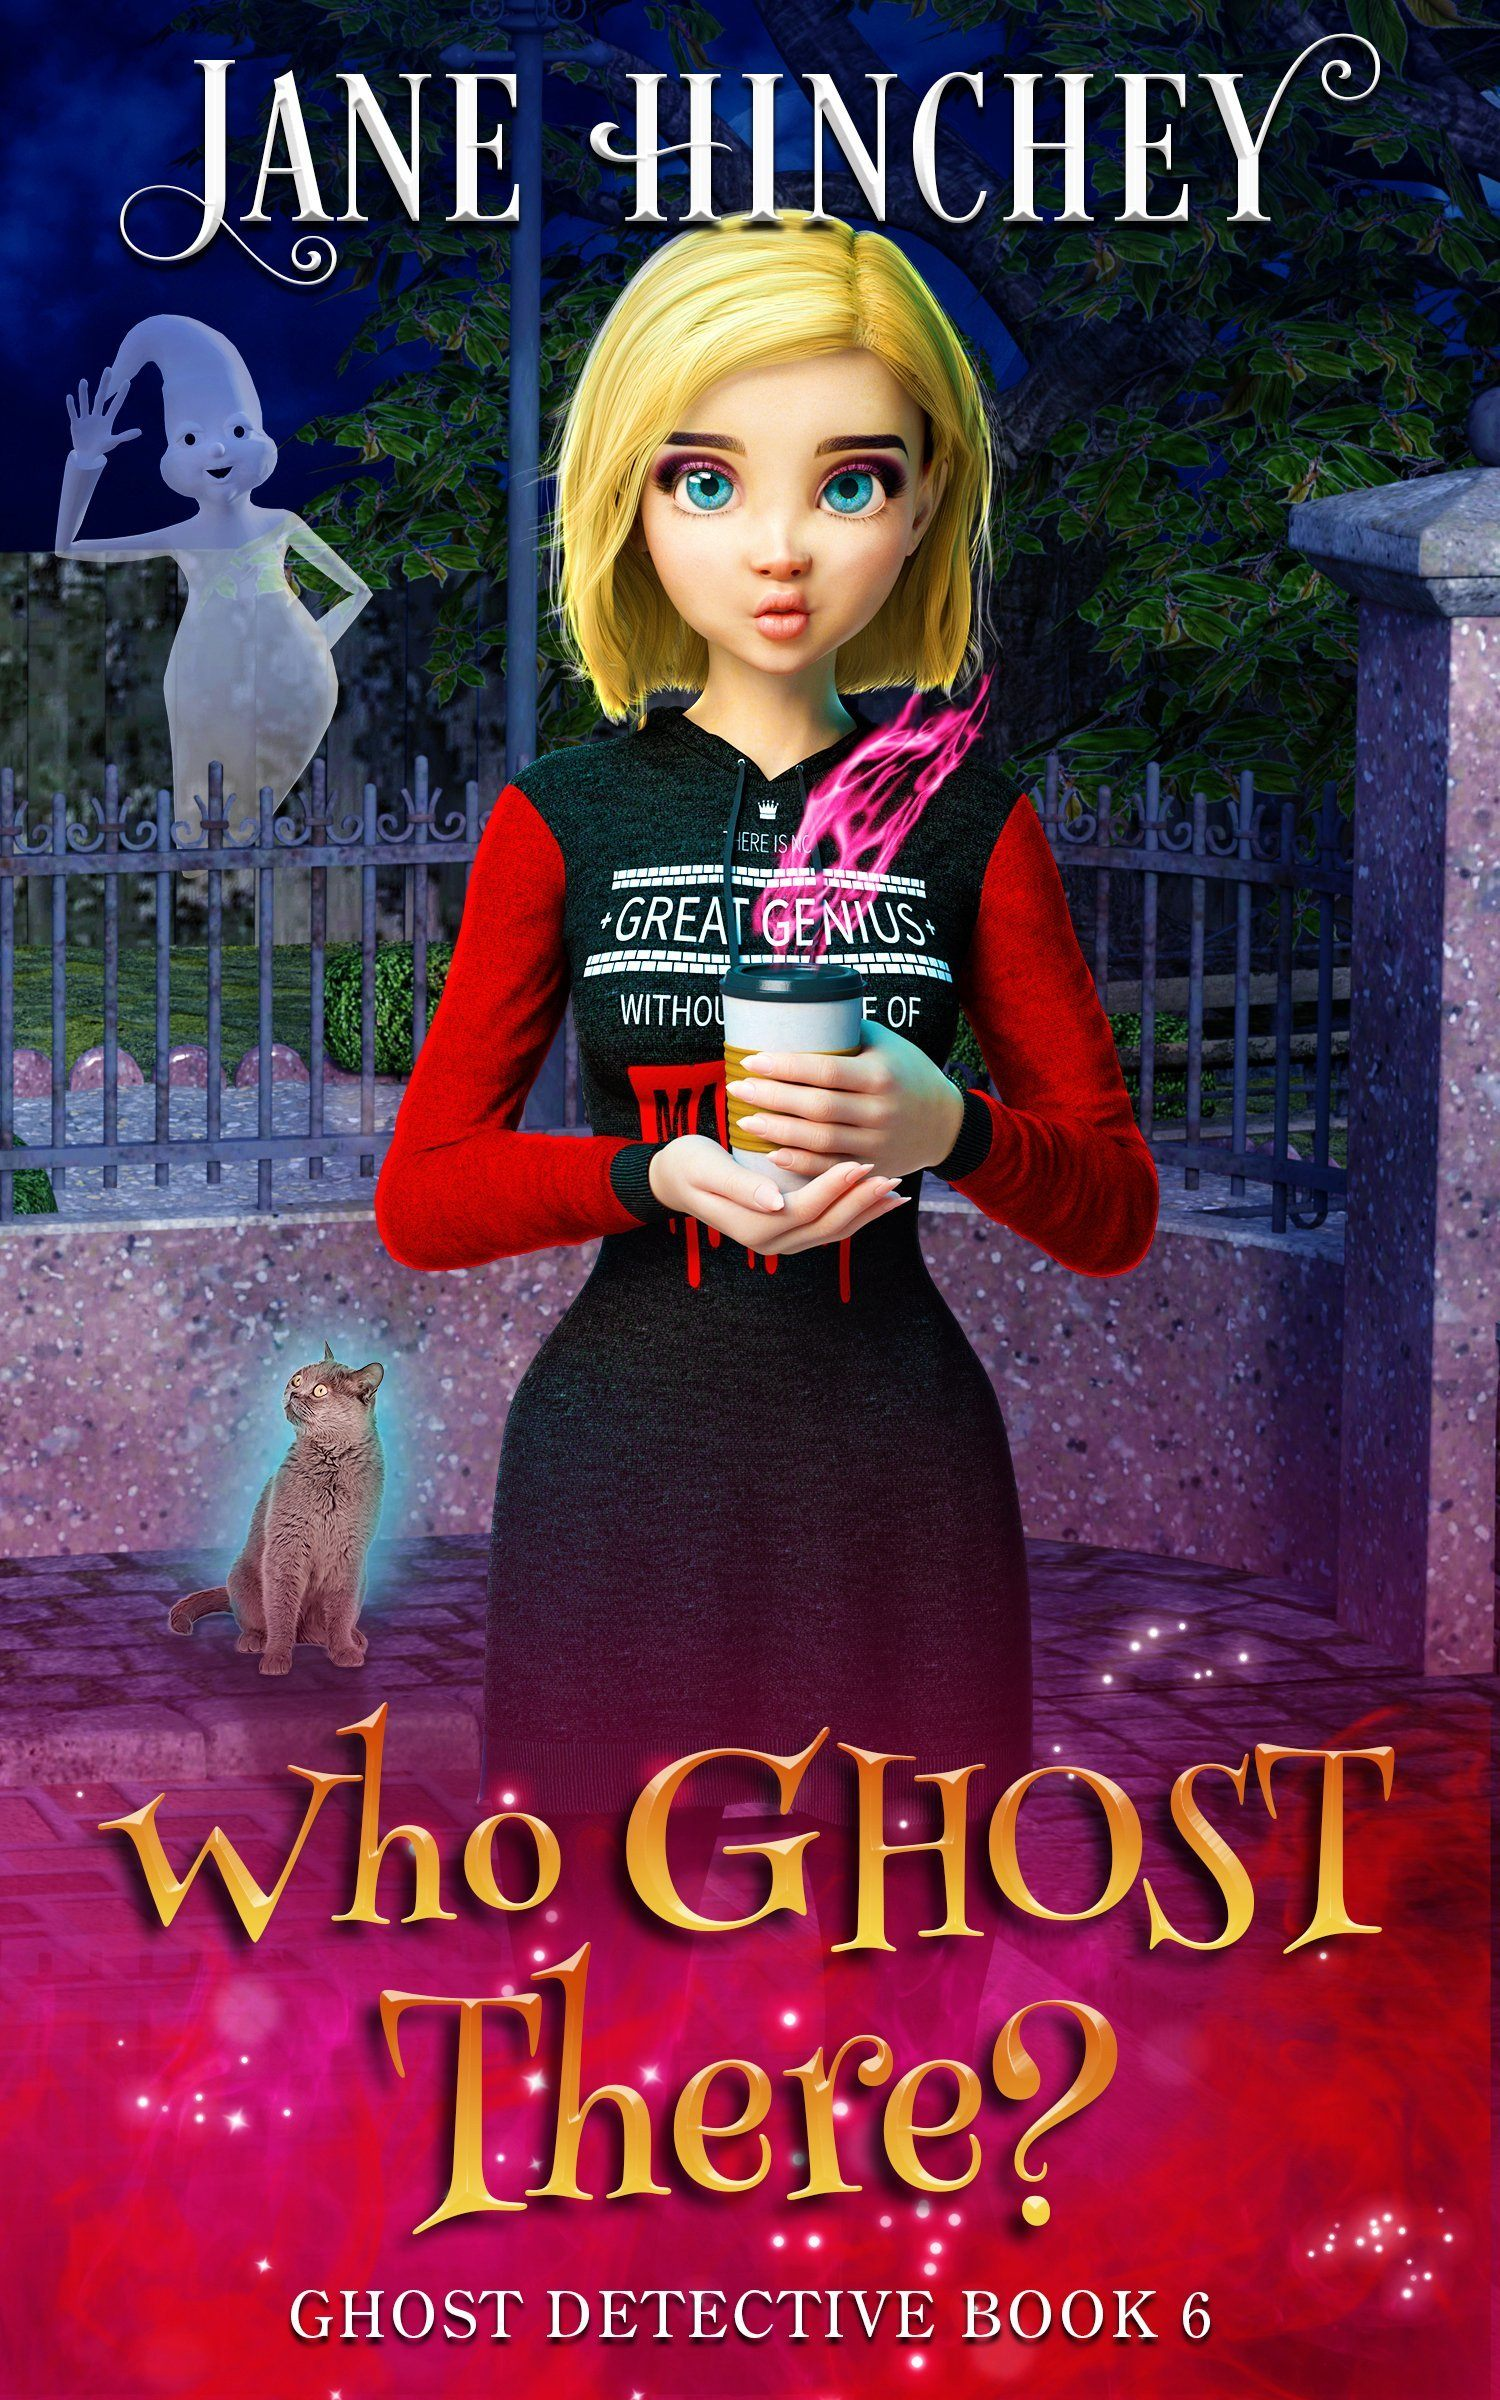 Ghost Detective Book 6